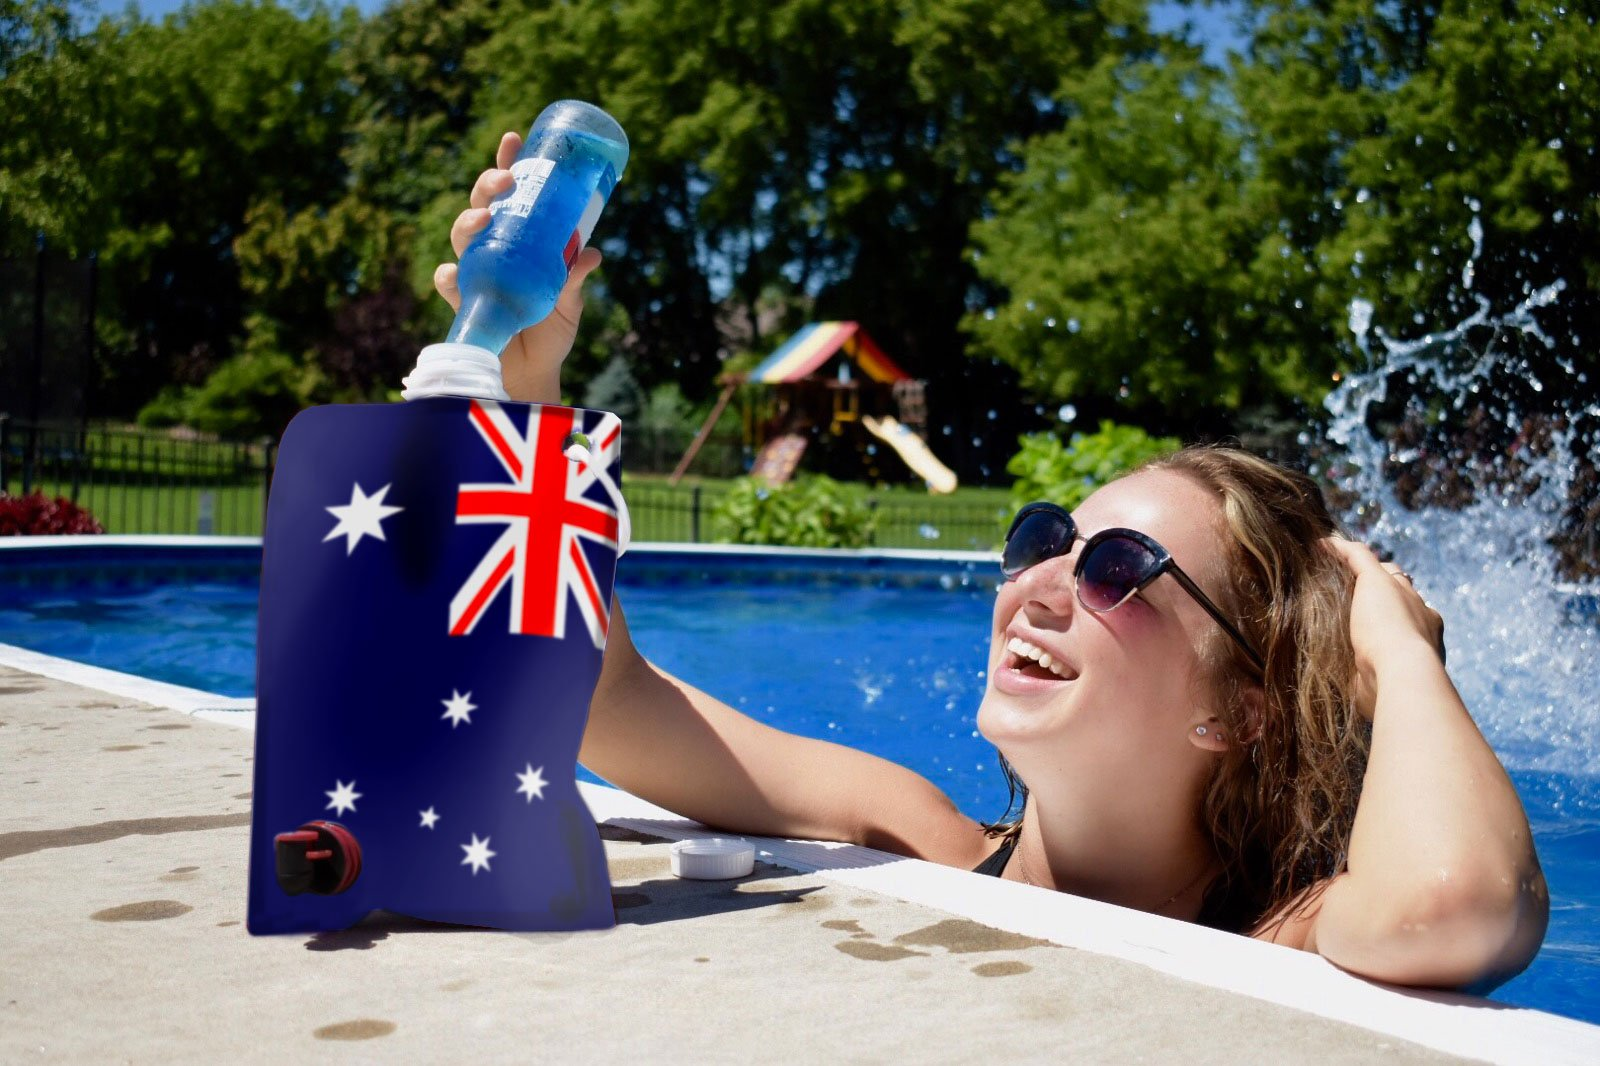 Australian Flag Adult Party Flask: 2 liter Flasks Make the Perfect Drink Dispenser for Your Australia Day Party Supplies, Summer Beach or Pool Party, Soccer, Cricket, or Football Tailgating and More